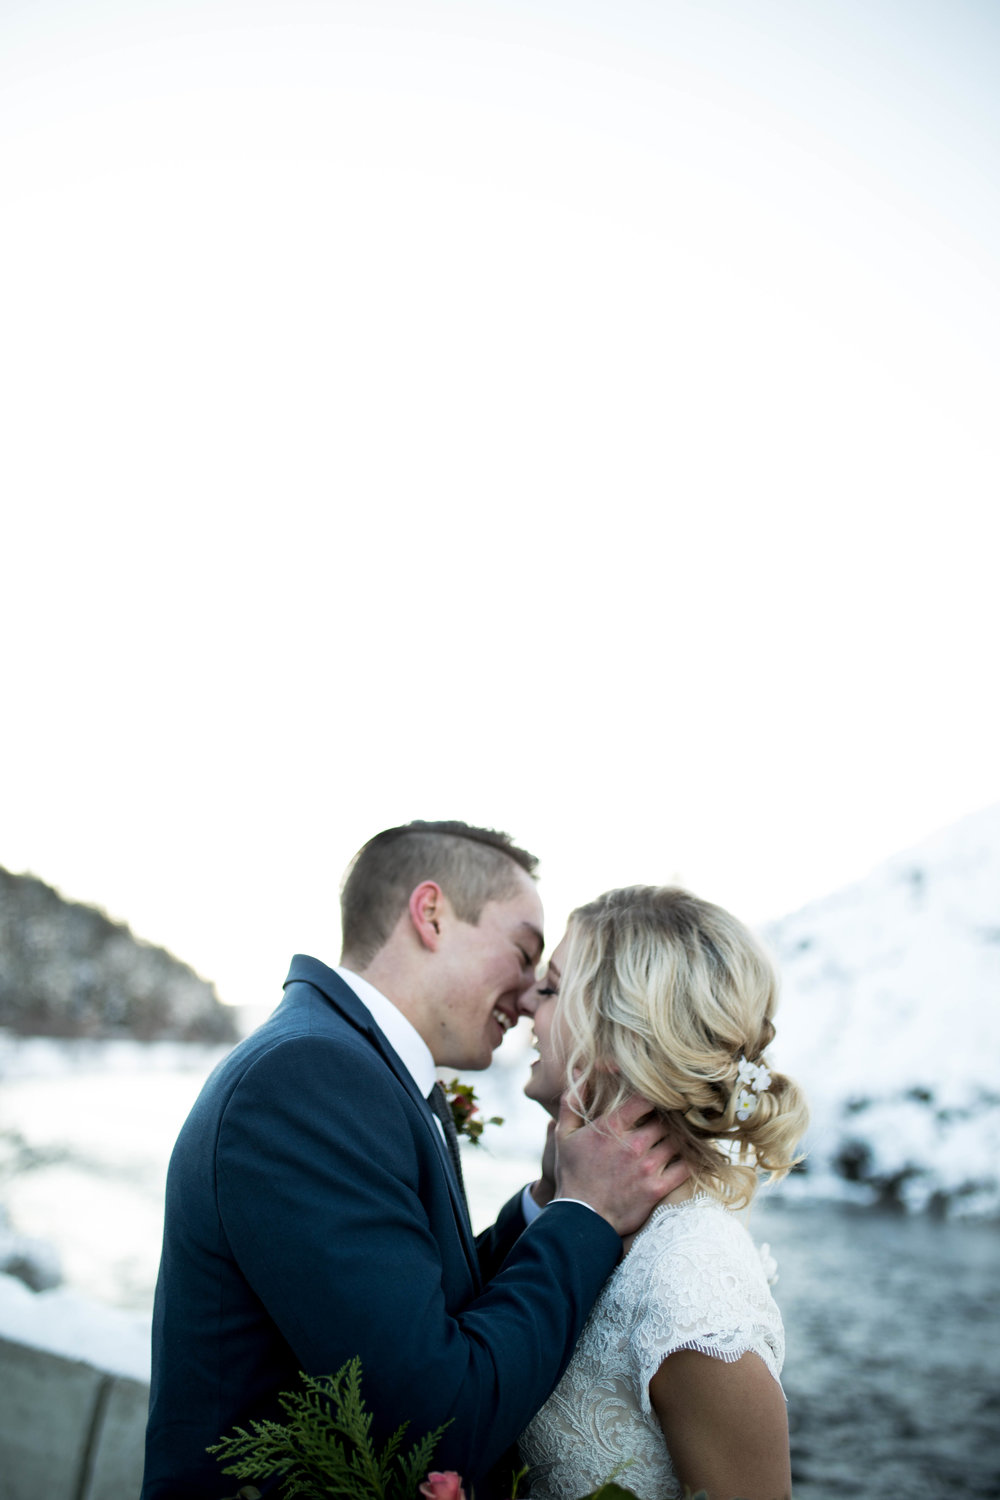 WinterWeddingBridalsTarghee (39 of 121).jpg